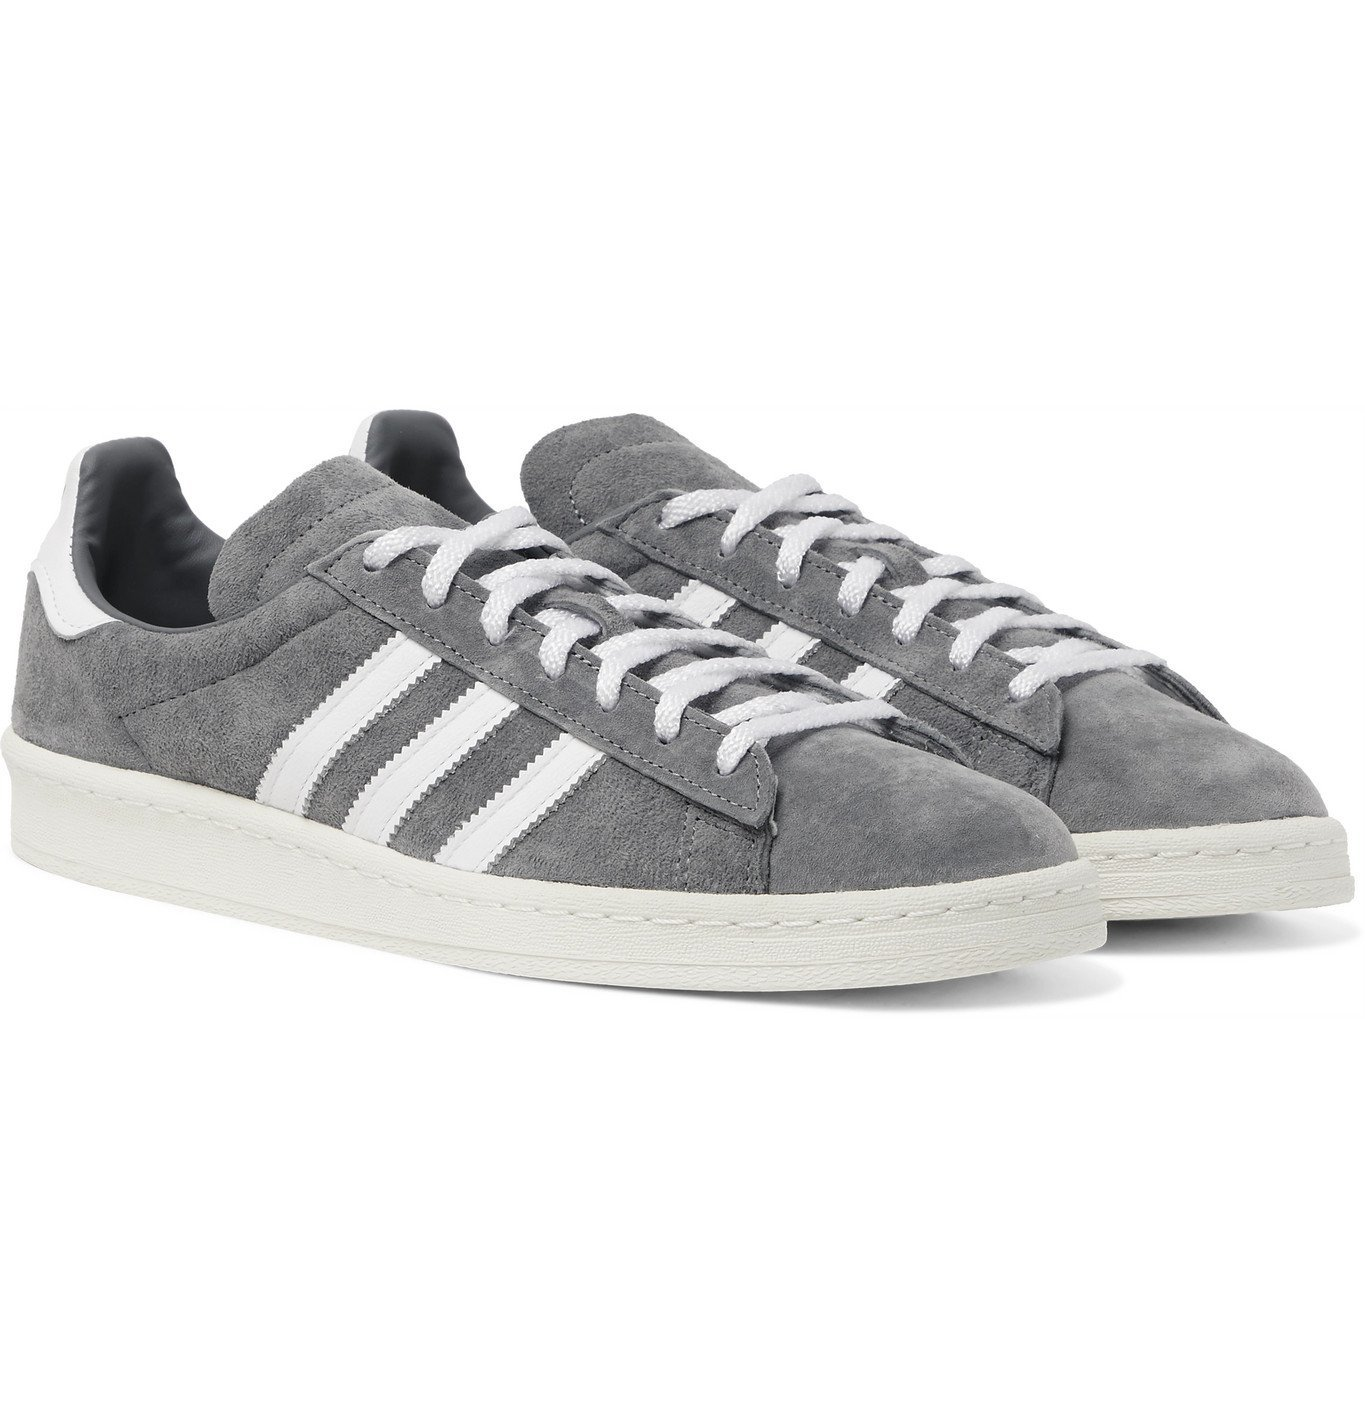 ADIDAS ORIGINALS - Campus 80s Leather-Trimmed Suede Sneakers - Gray